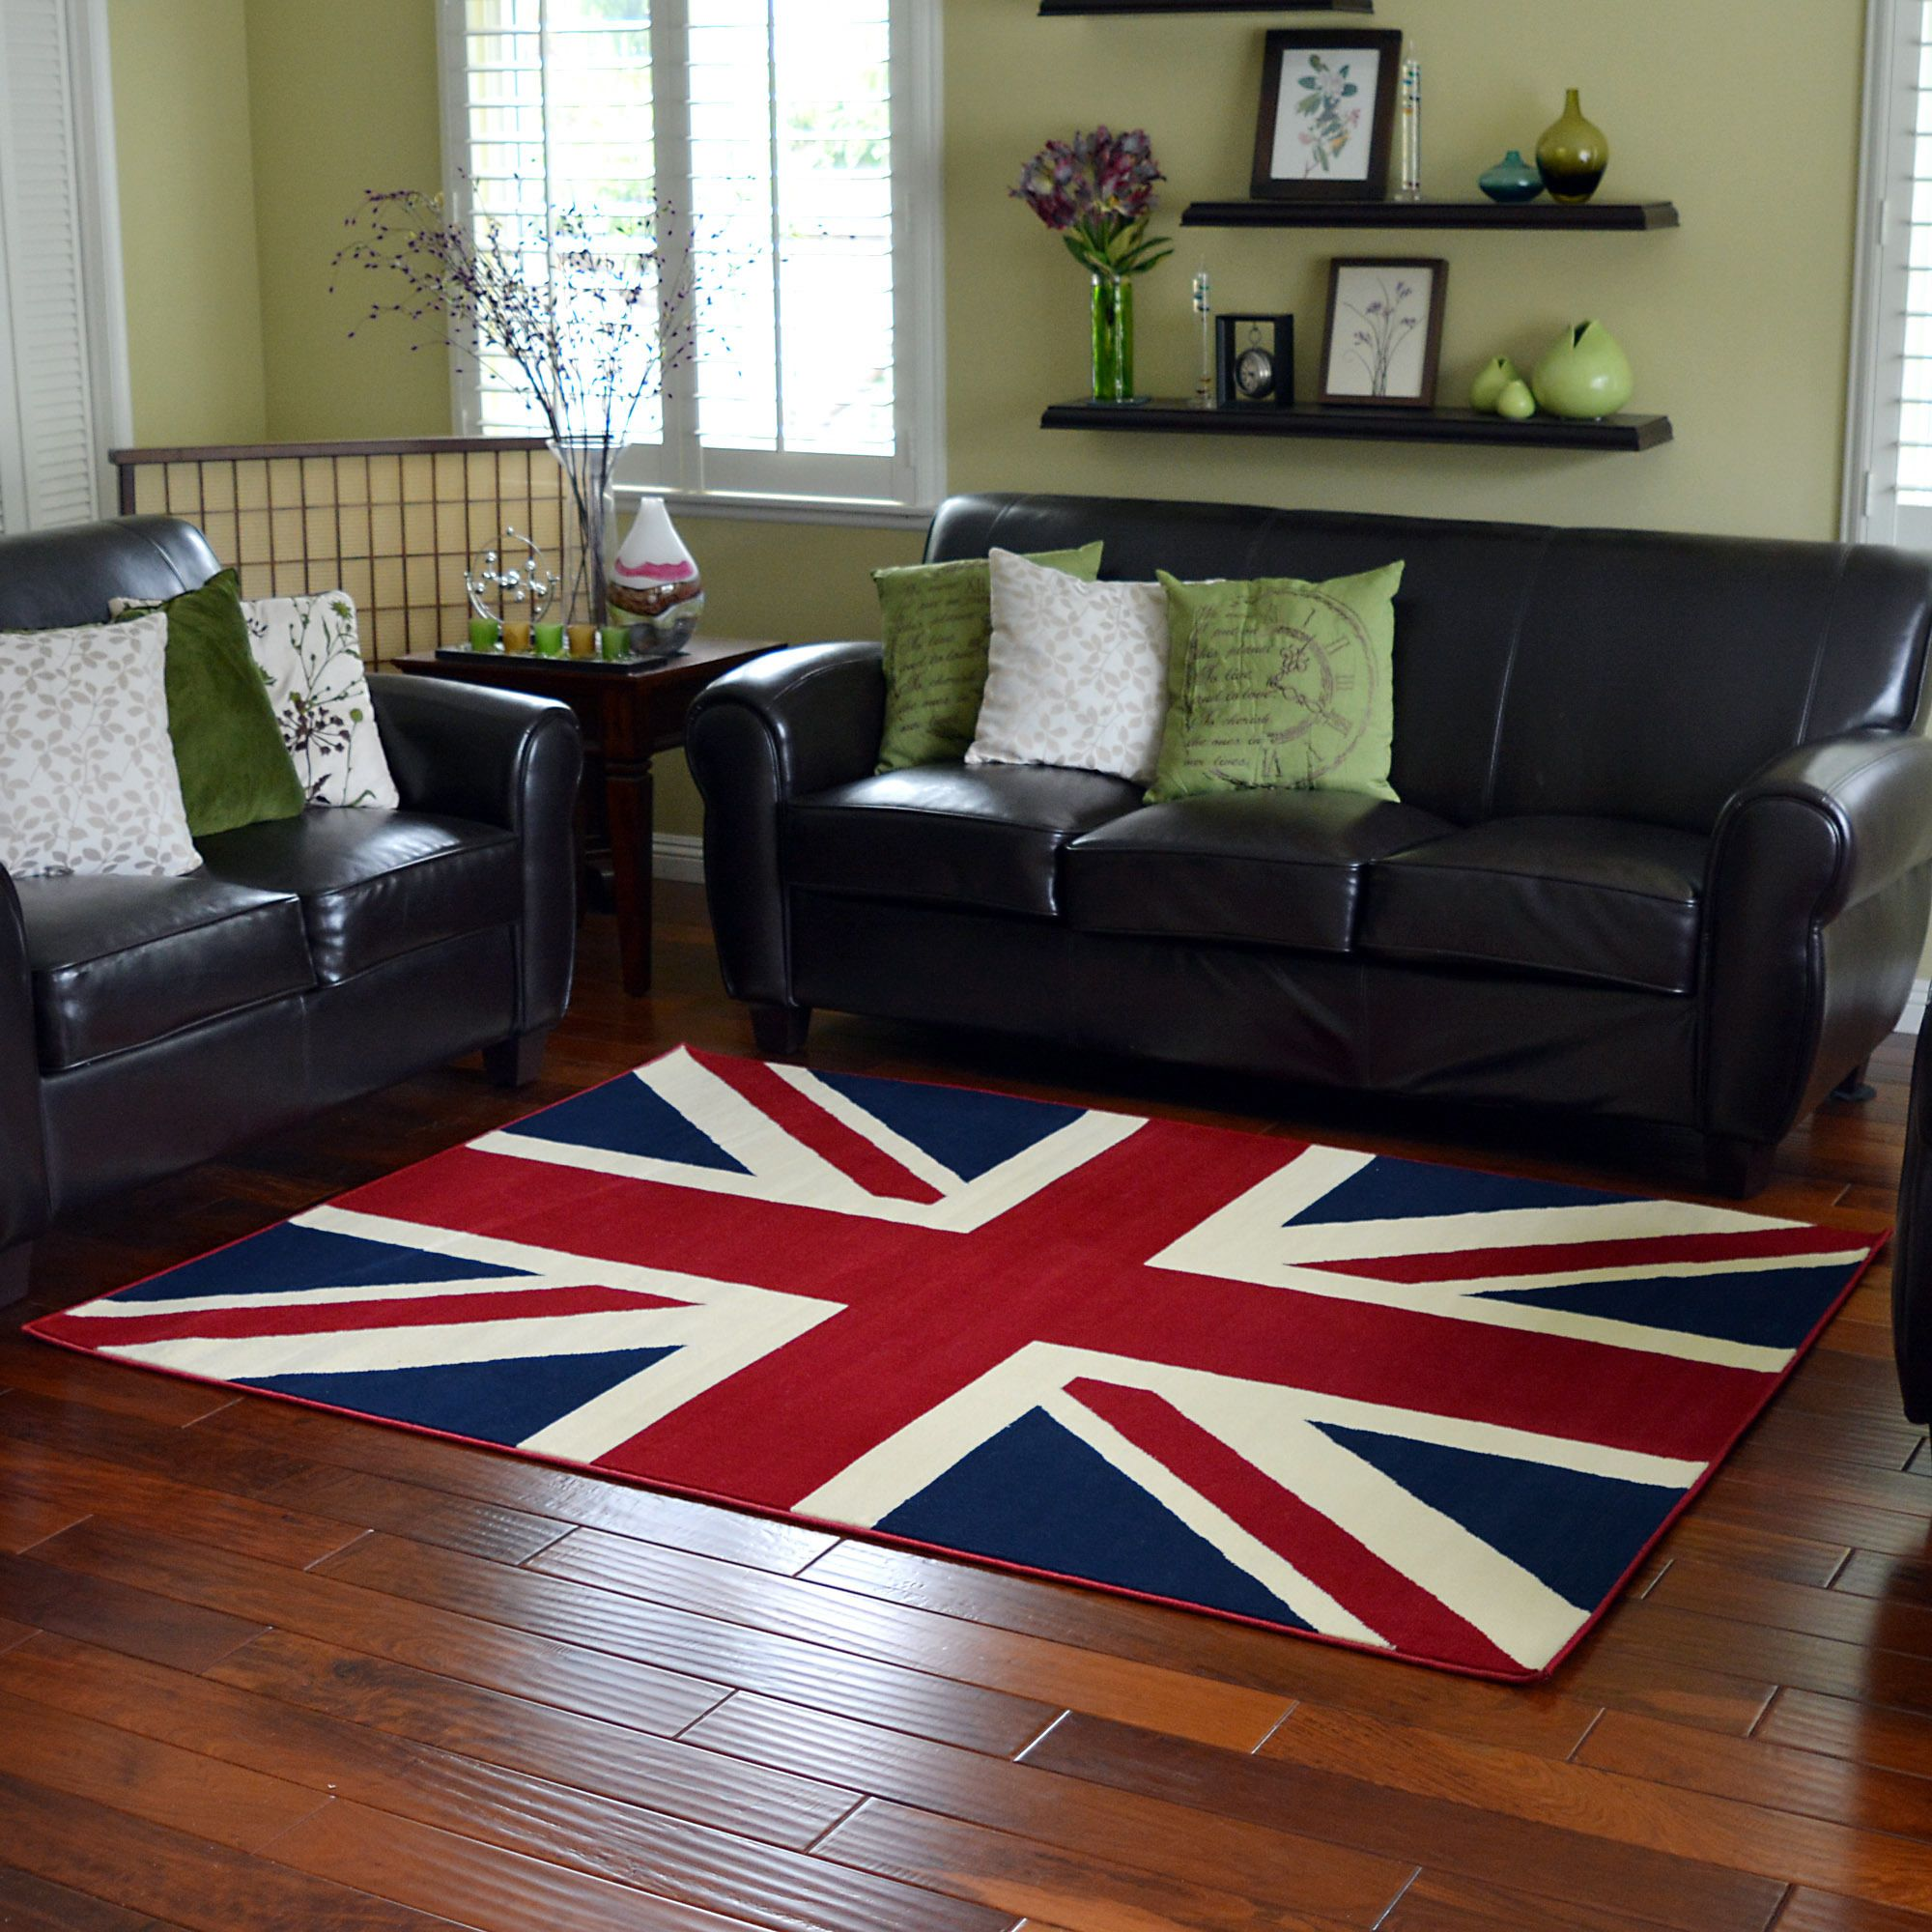 This Union Jack British Flag Design Area Rug Is Very Trendy And Will Bring A Contemporary Feeling To Any Room The Large Offers Stylish Flair